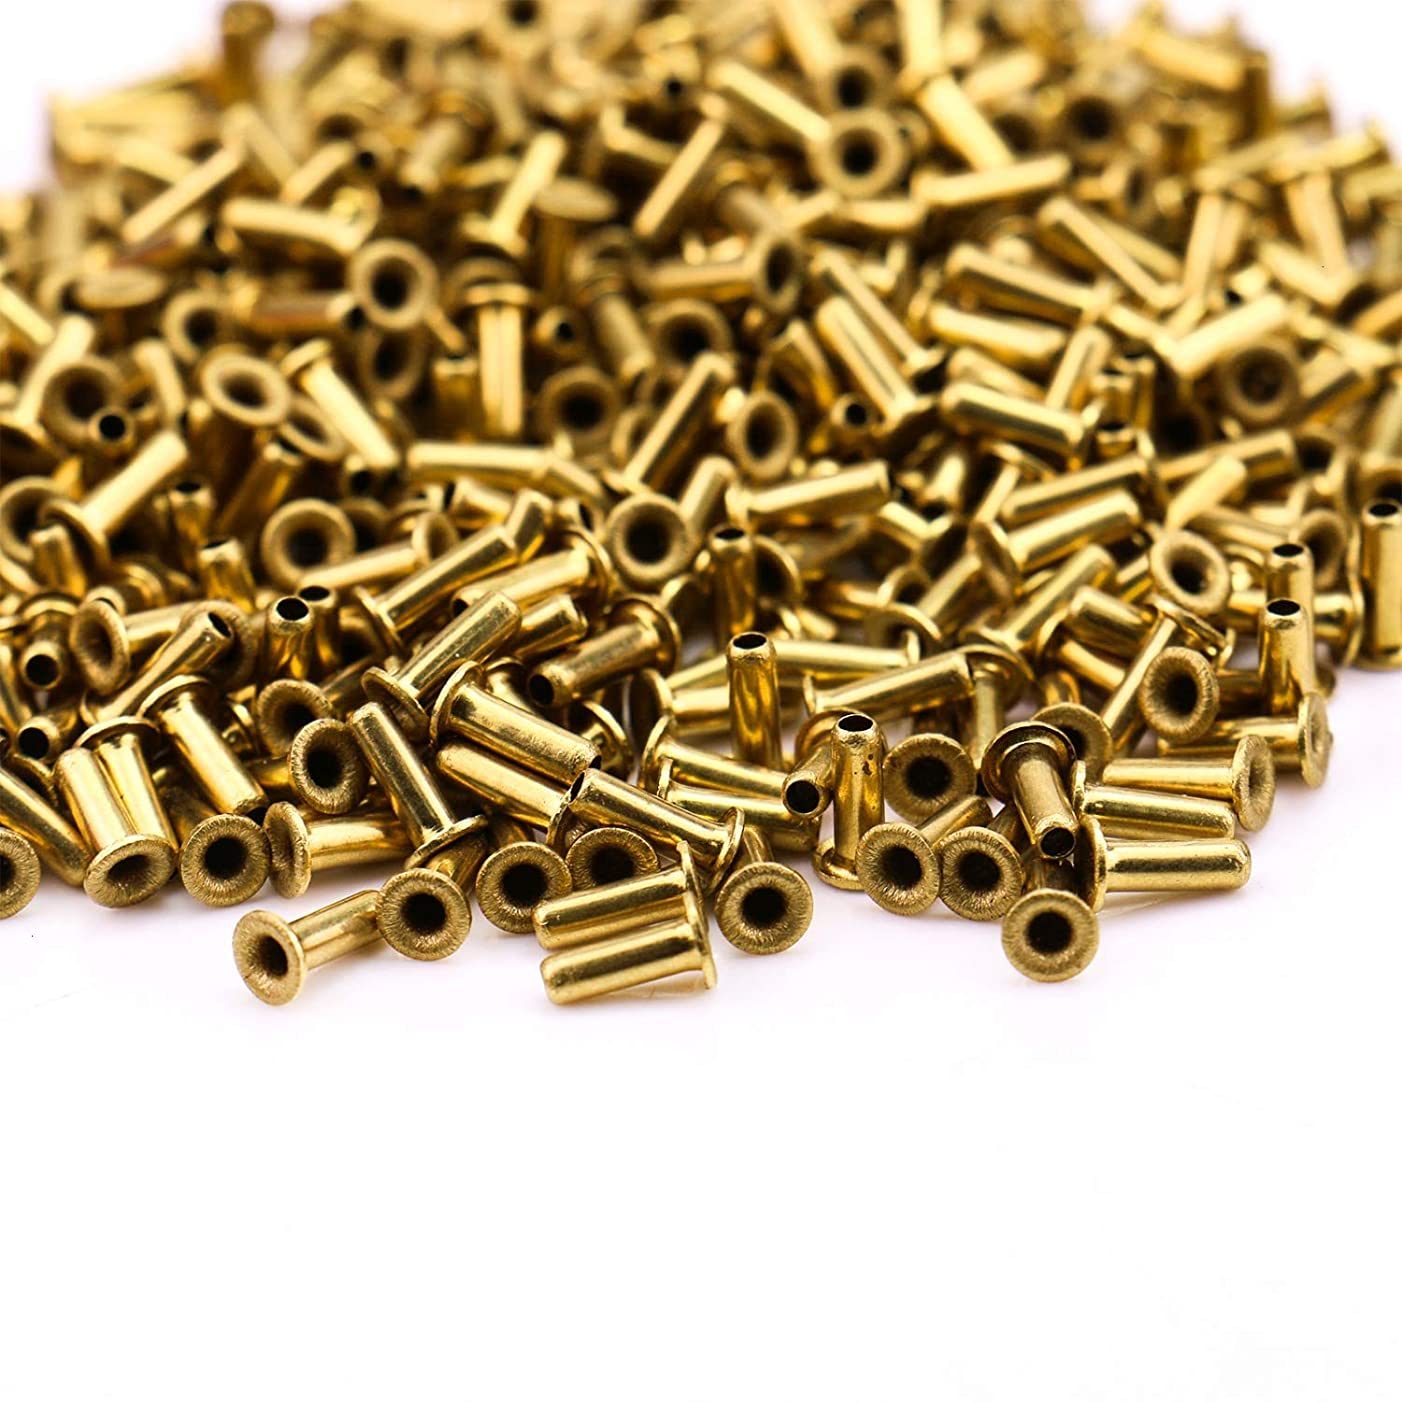 Monrocco 500 Pcs M2x6mm Gold Metal Hollow Eyelets Rivets Brass Plated Long Eyelets Nut for Jewelry Leather